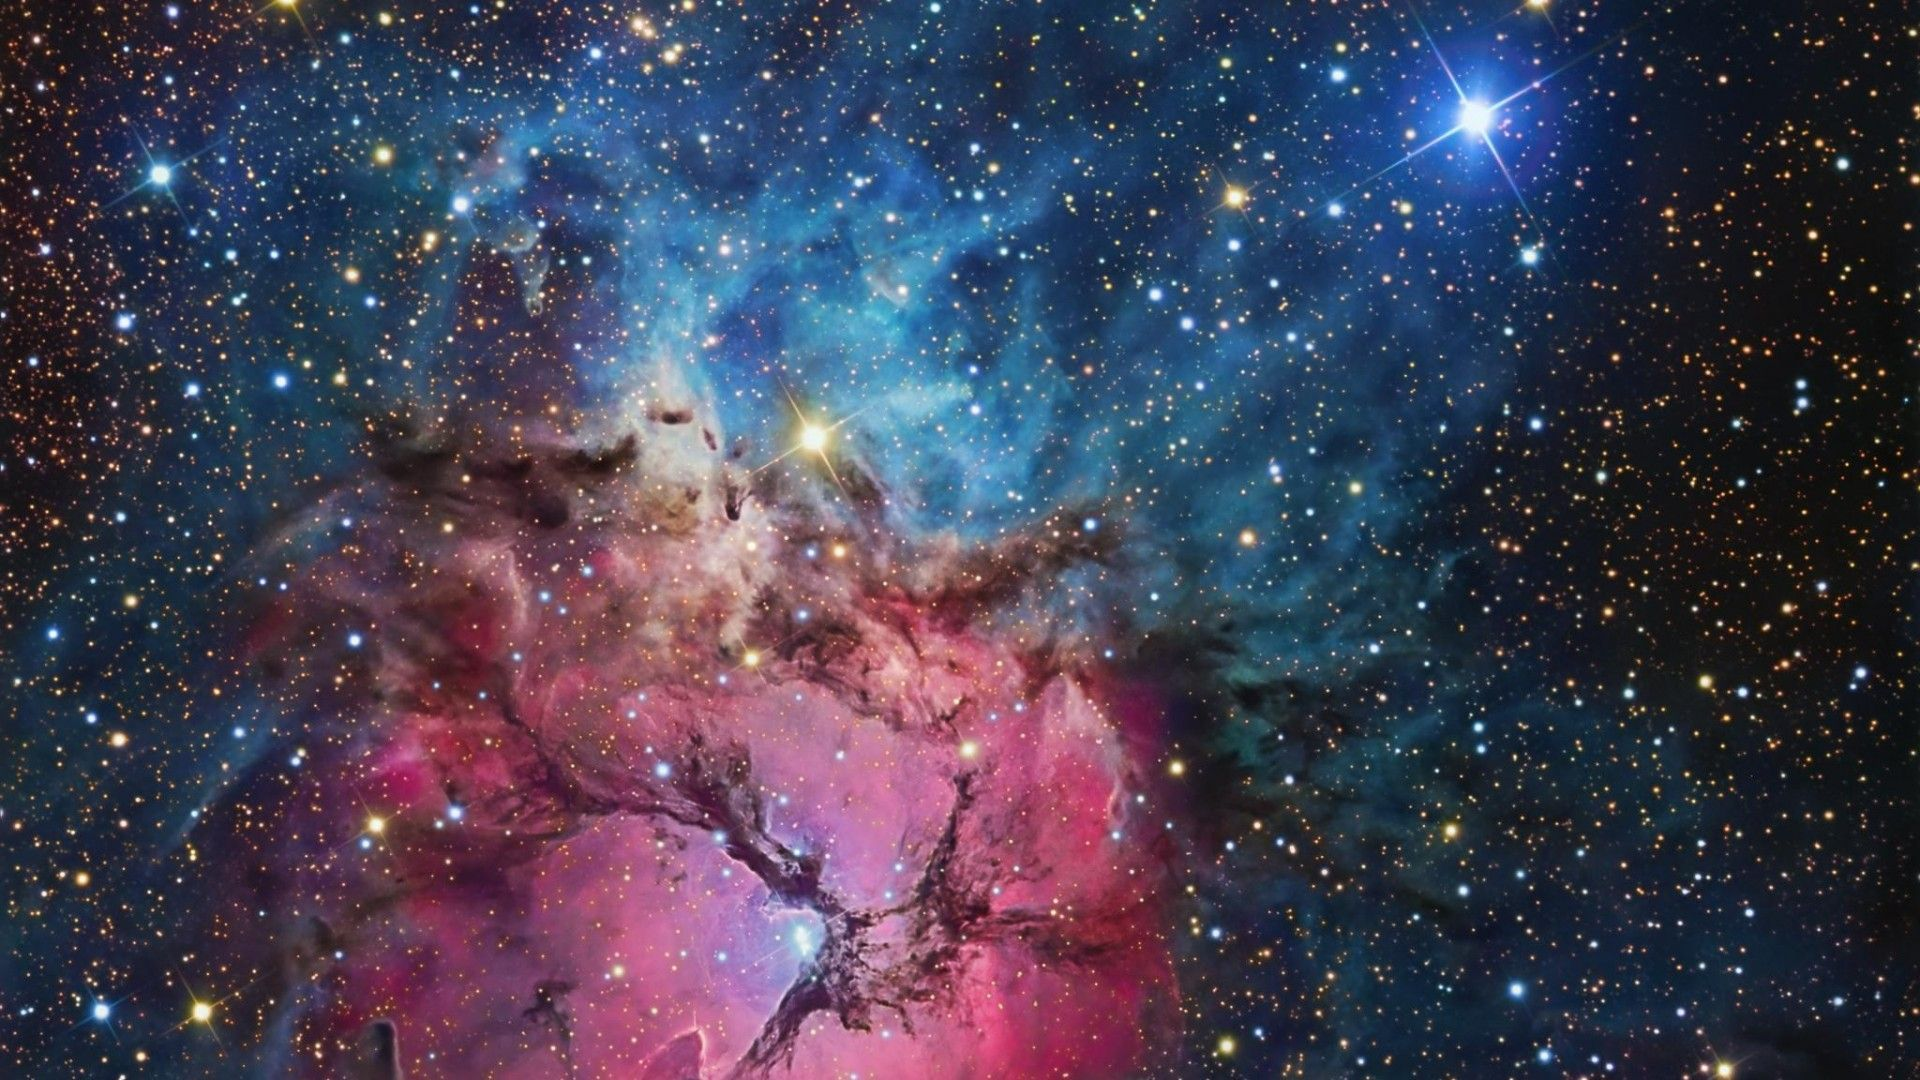 Hubble Wallpapers 1920x1080 - Wallpaper Cave   All Wallpapers   Pinterest   Hubble space, Hubble ...